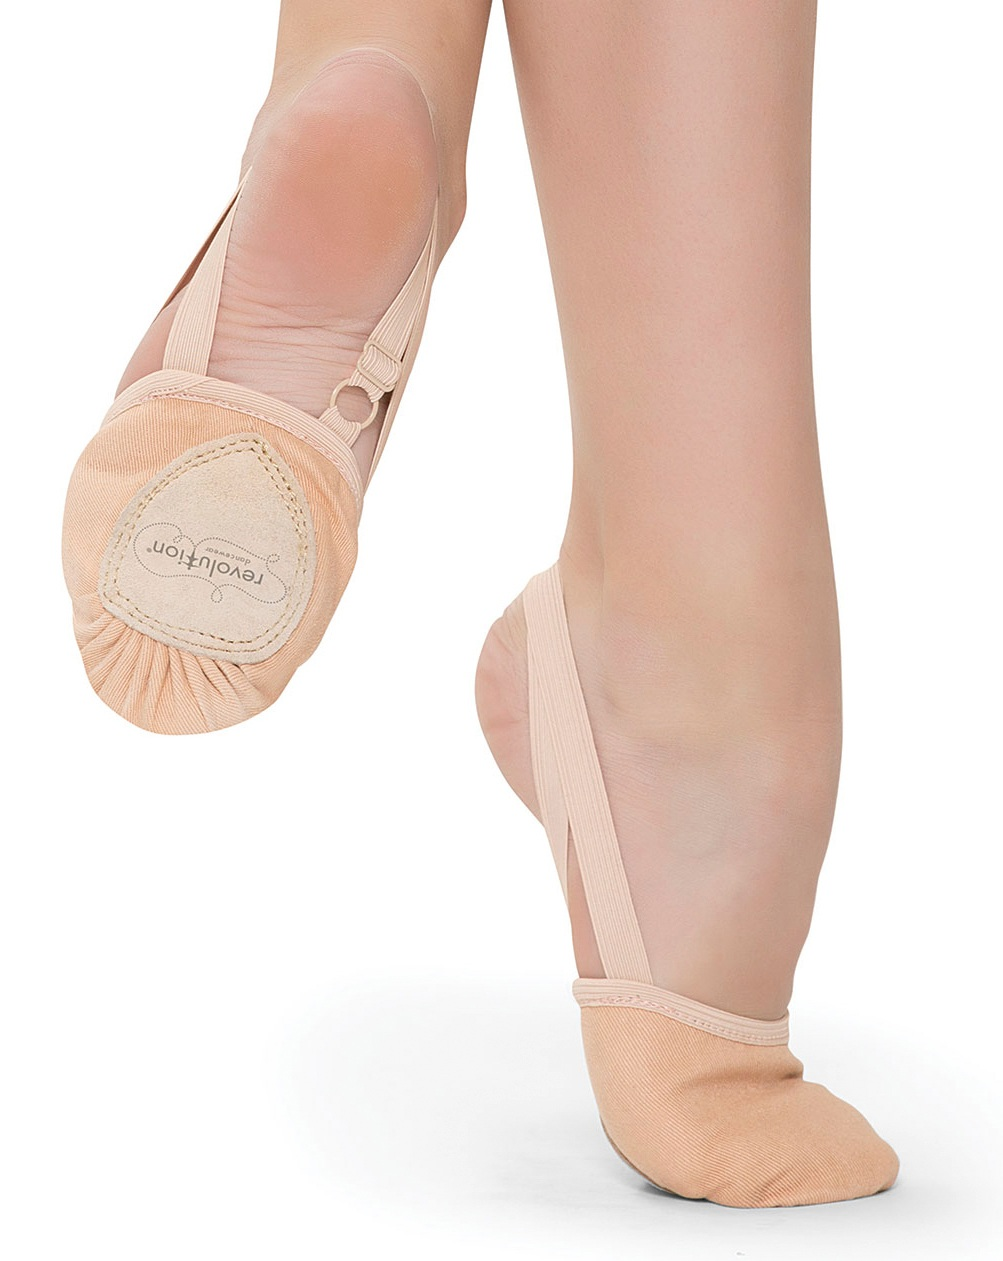 Lyrical - - Shorts or Leggings- Leotard, Tank Top, or T-Shirt (Form fitting, No midriffs)- Hair pulled back in a Bun or Ponytail- Bare Foot, Half Soles or Foot UndeezImage from Revolution Dancewear